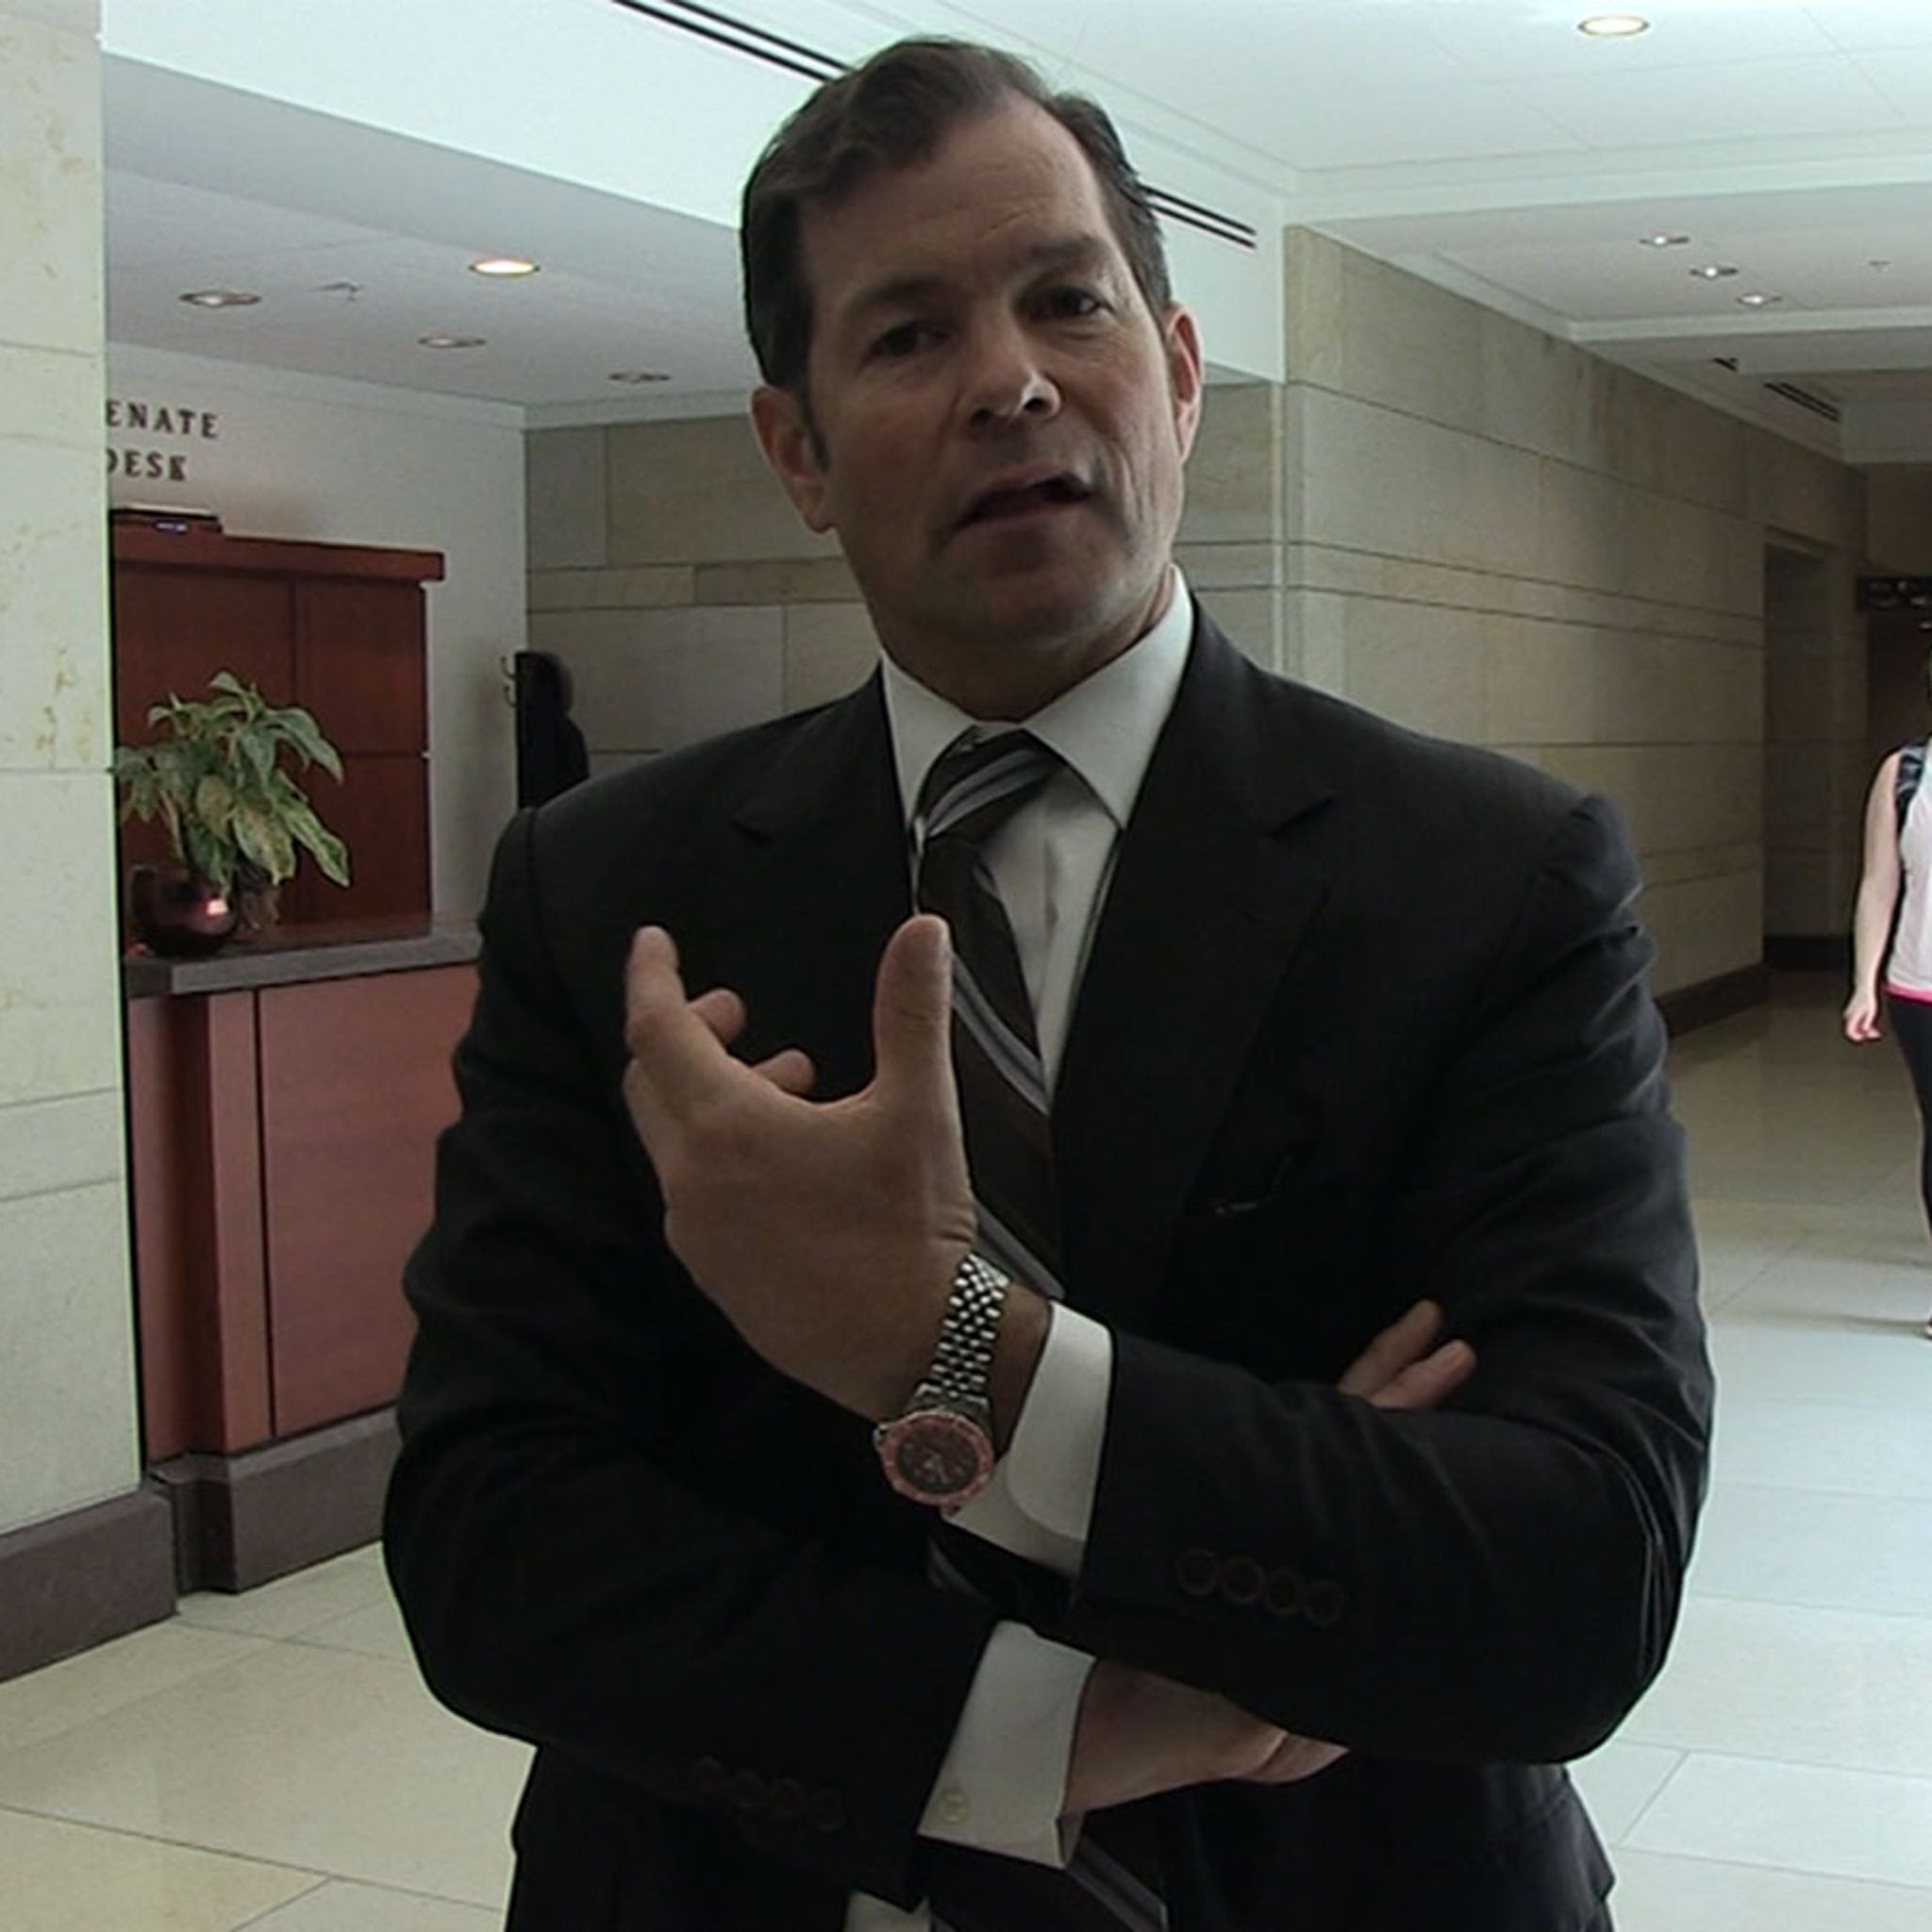 NHL's Mike Richter Begs Donald Trump To Take Climate Change Seriously